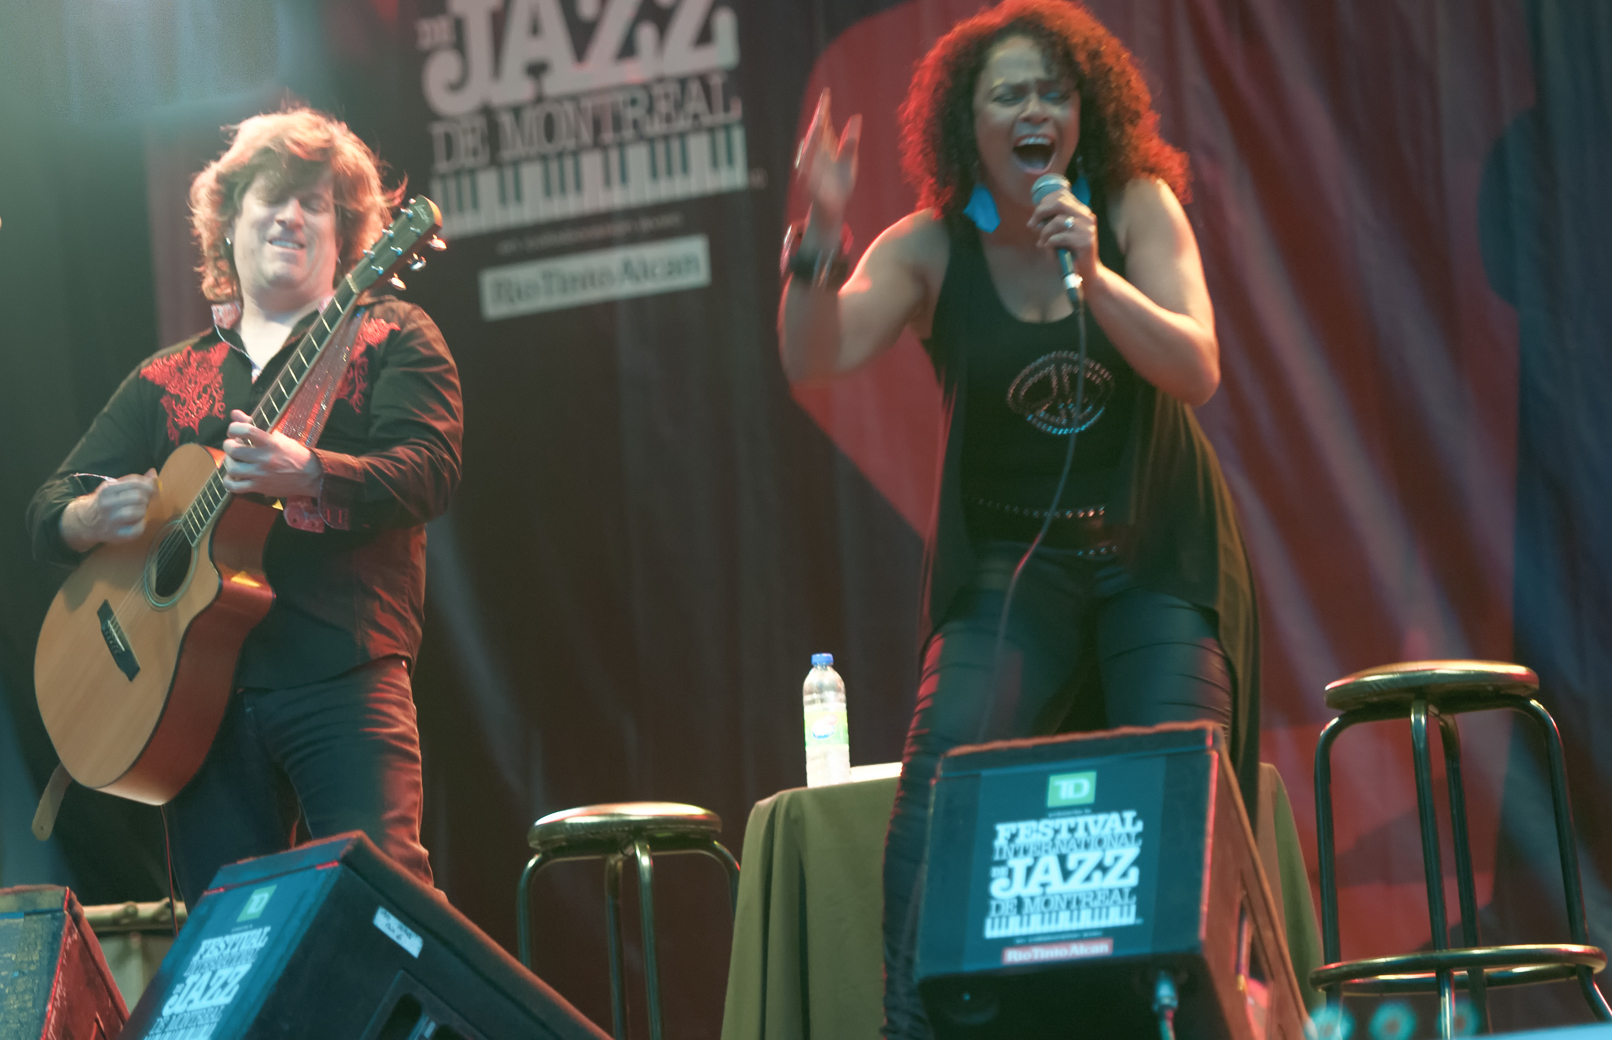 Paul deslaurier and dawn tyler watson at the montreal international jazz festival 2013